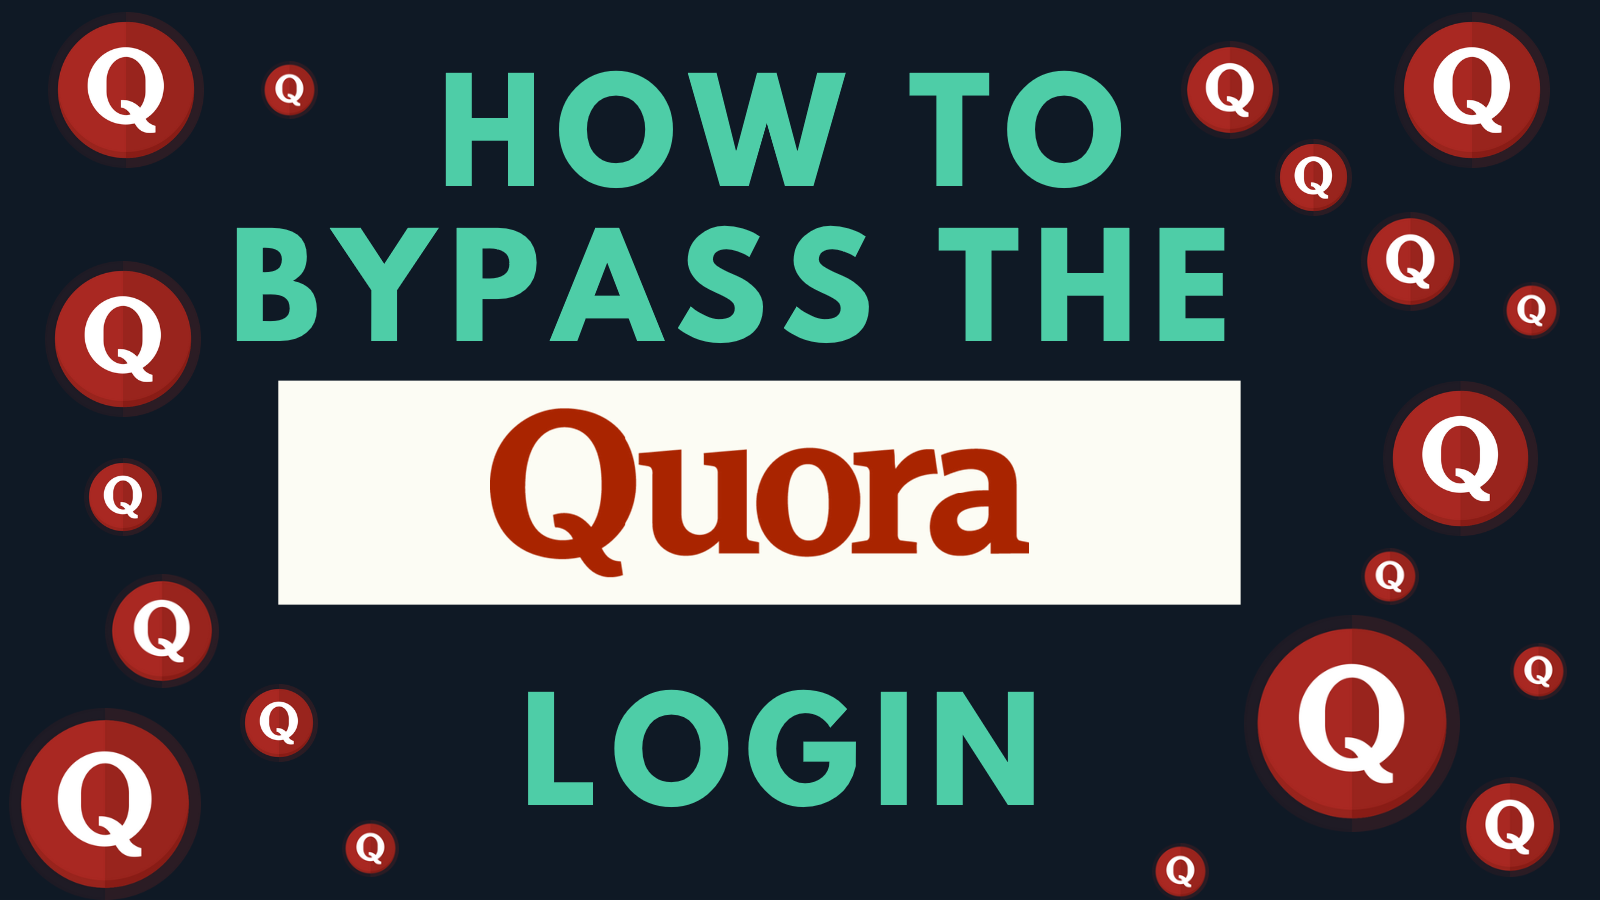 quora login, quora login bypass, quora without login, block quora, quora login annoying, how to open quora, quora login hack